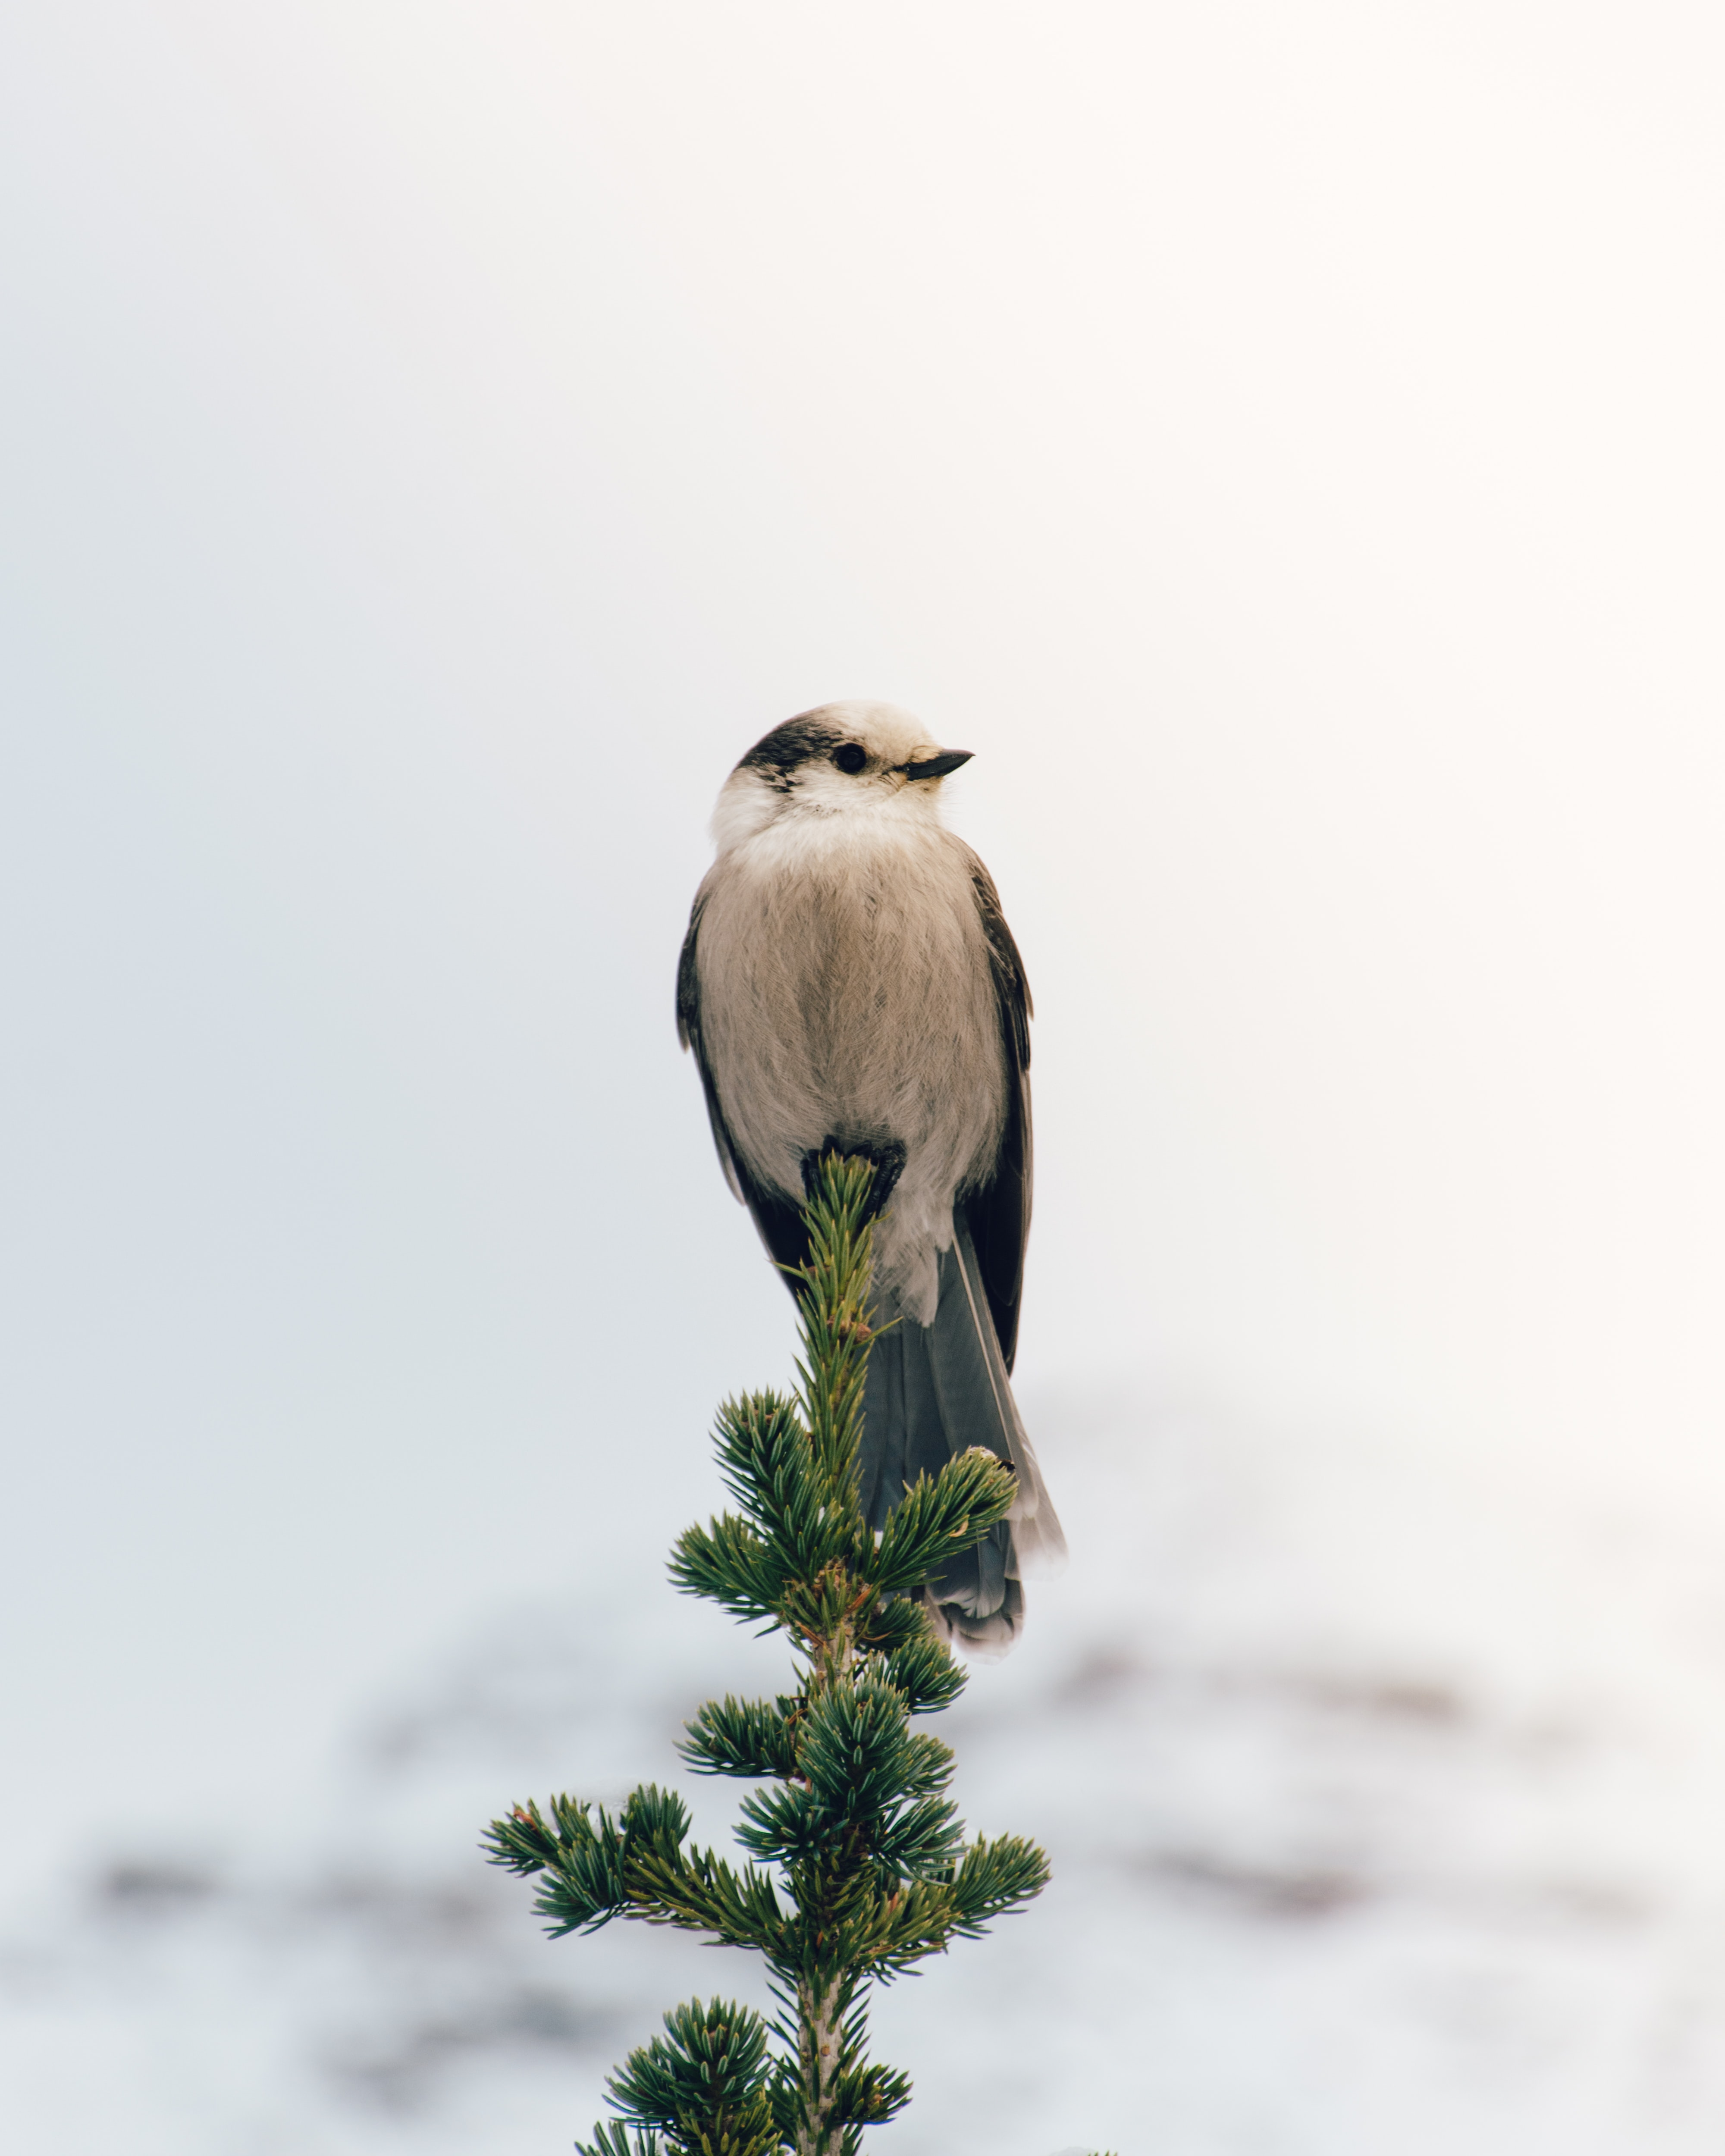 white and black bird perched on green twig during daytime